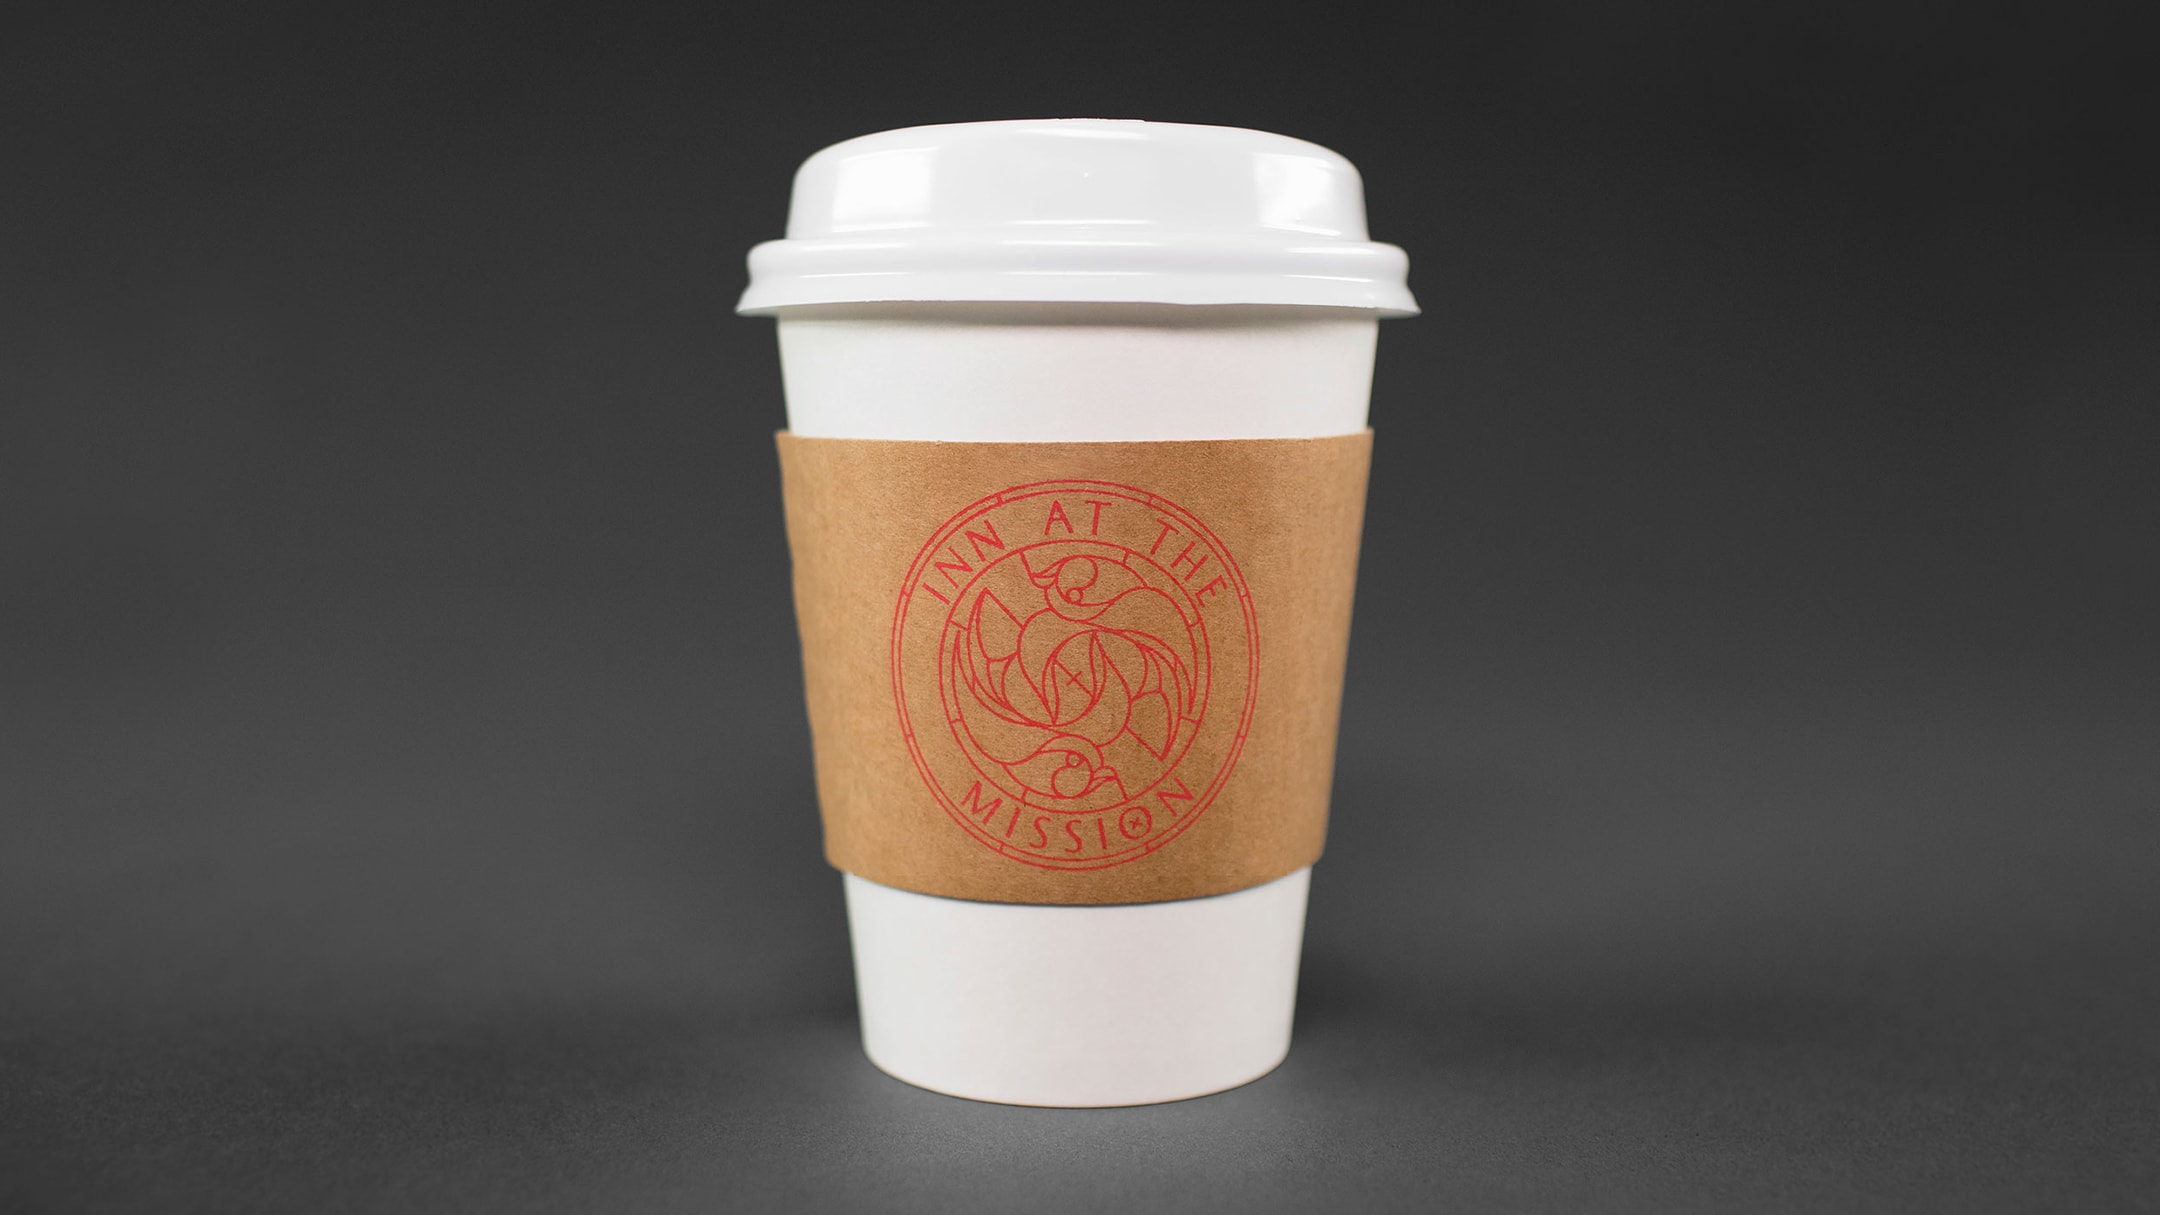 Inn At The Mission branded coffee sleeve